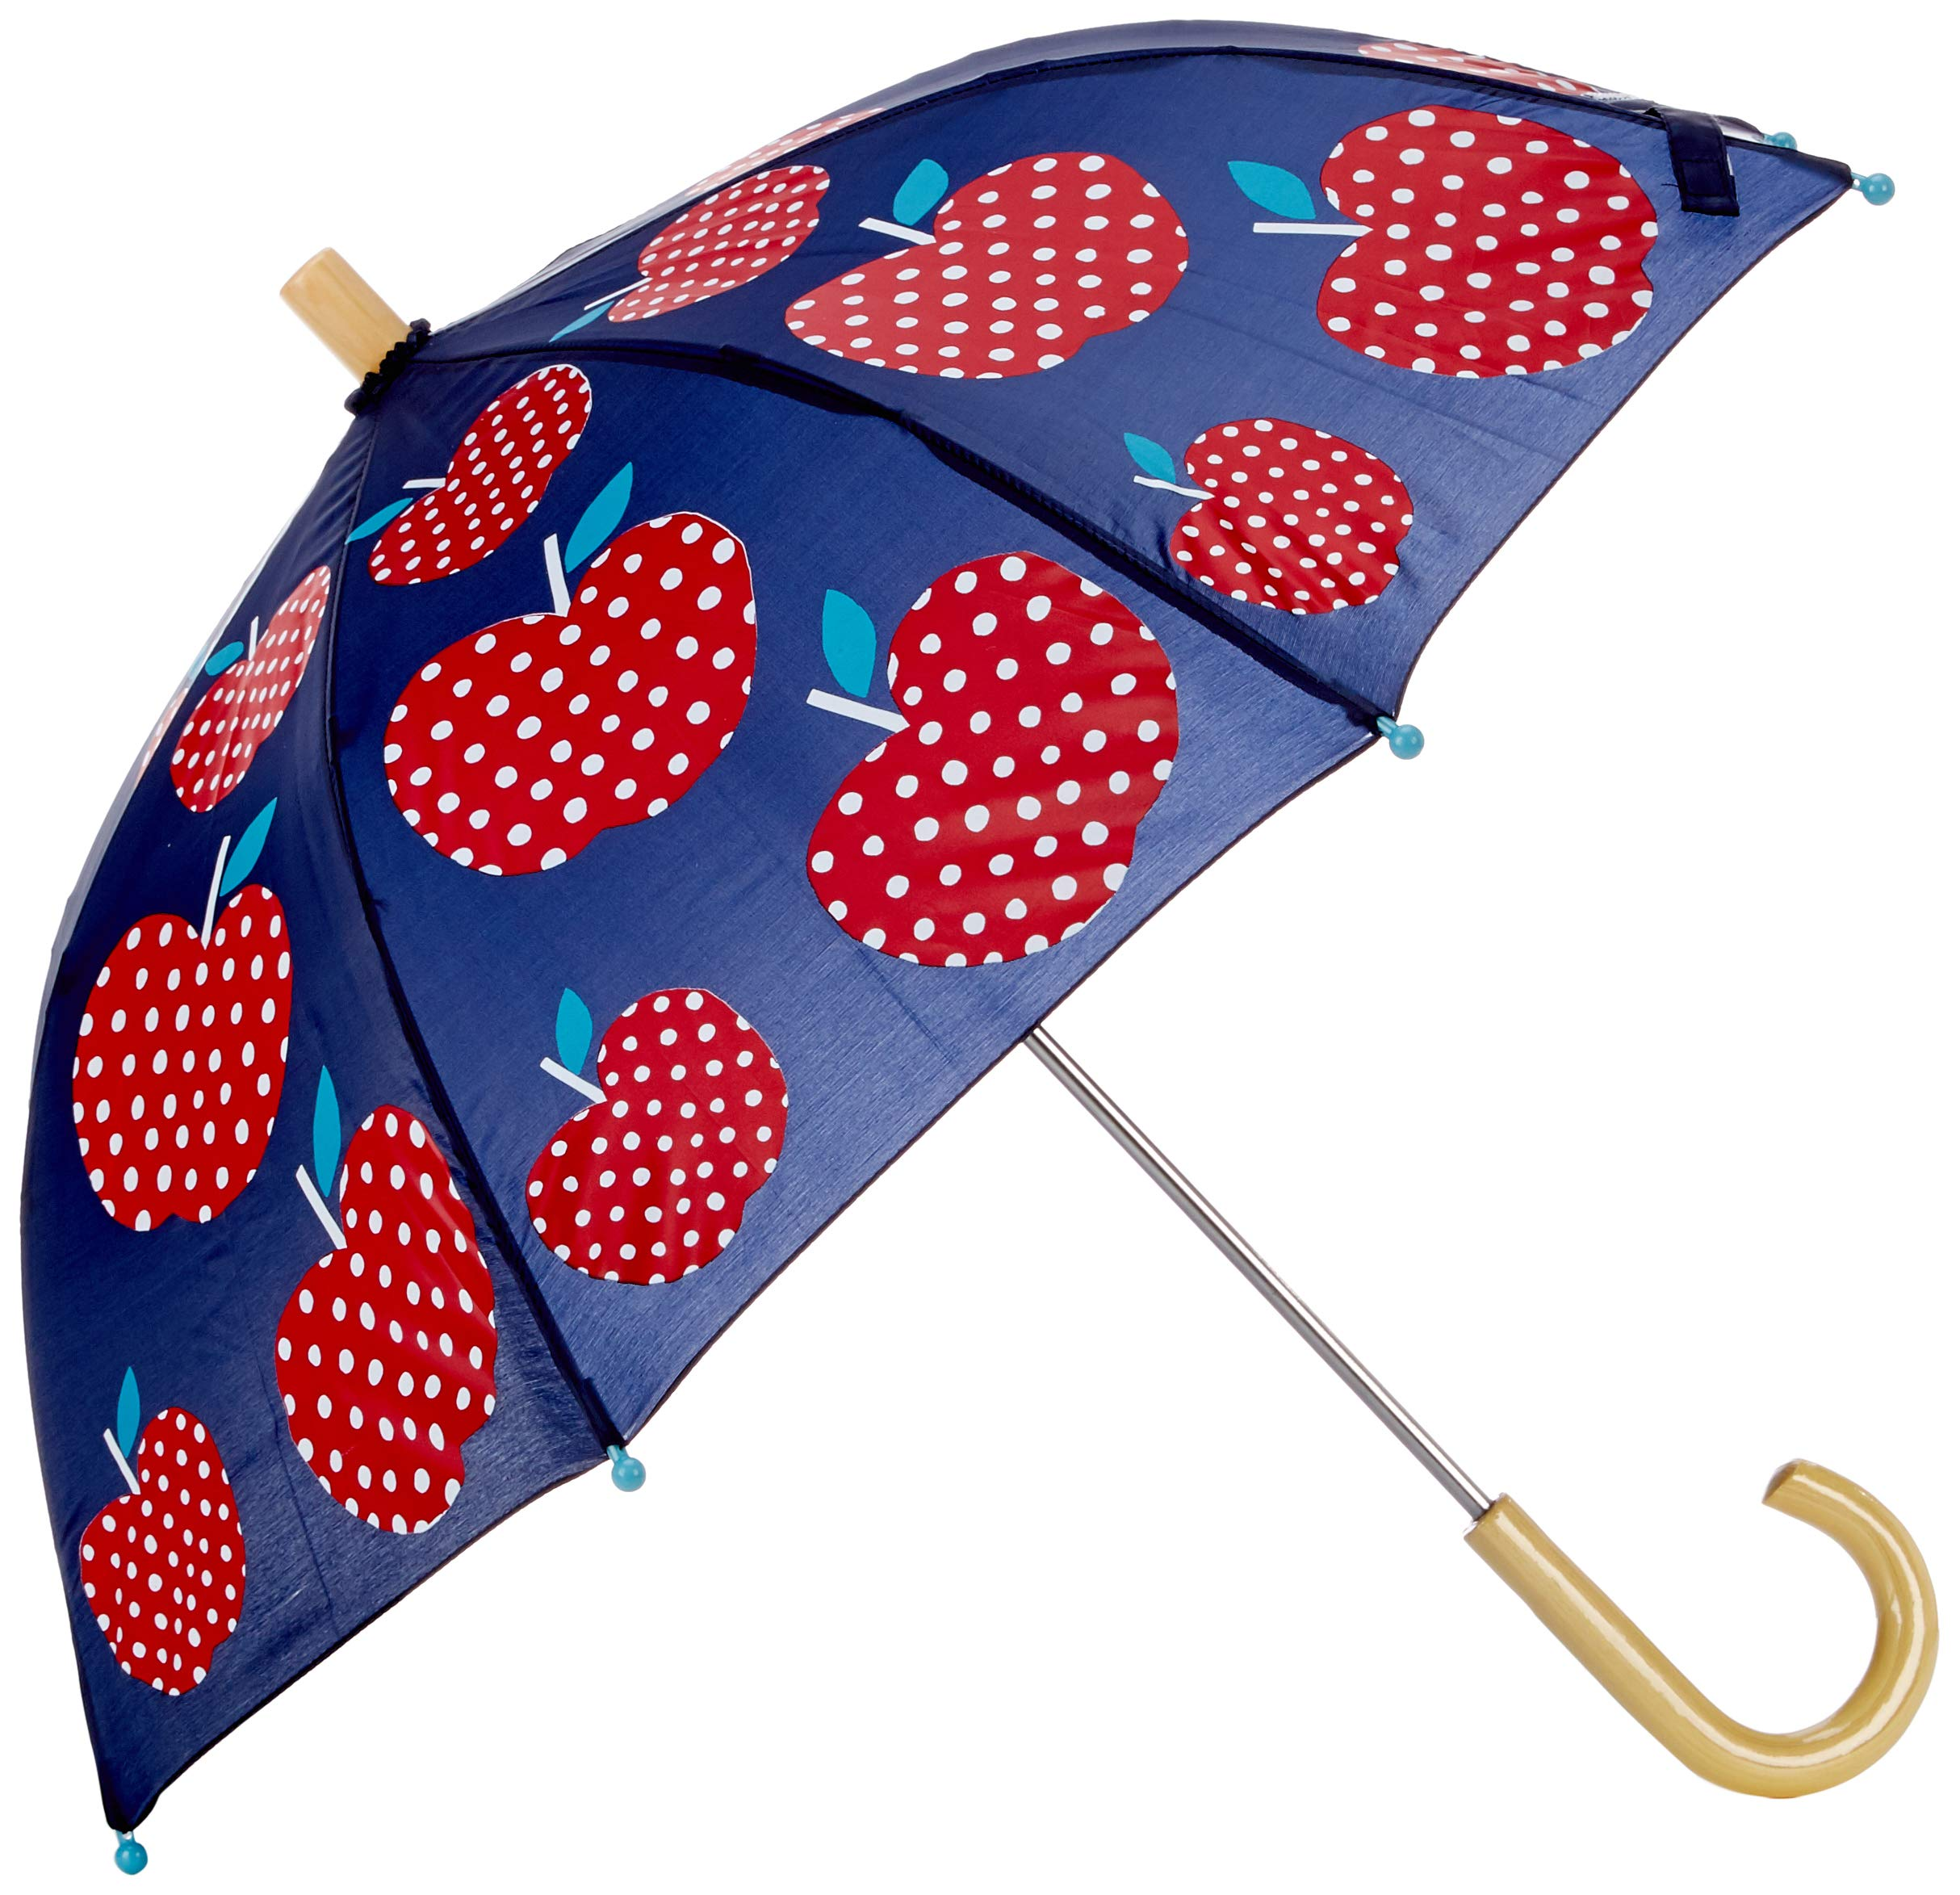 Hatley Girls' Little Printed Umbrellas, Polka Dot Apples One Size